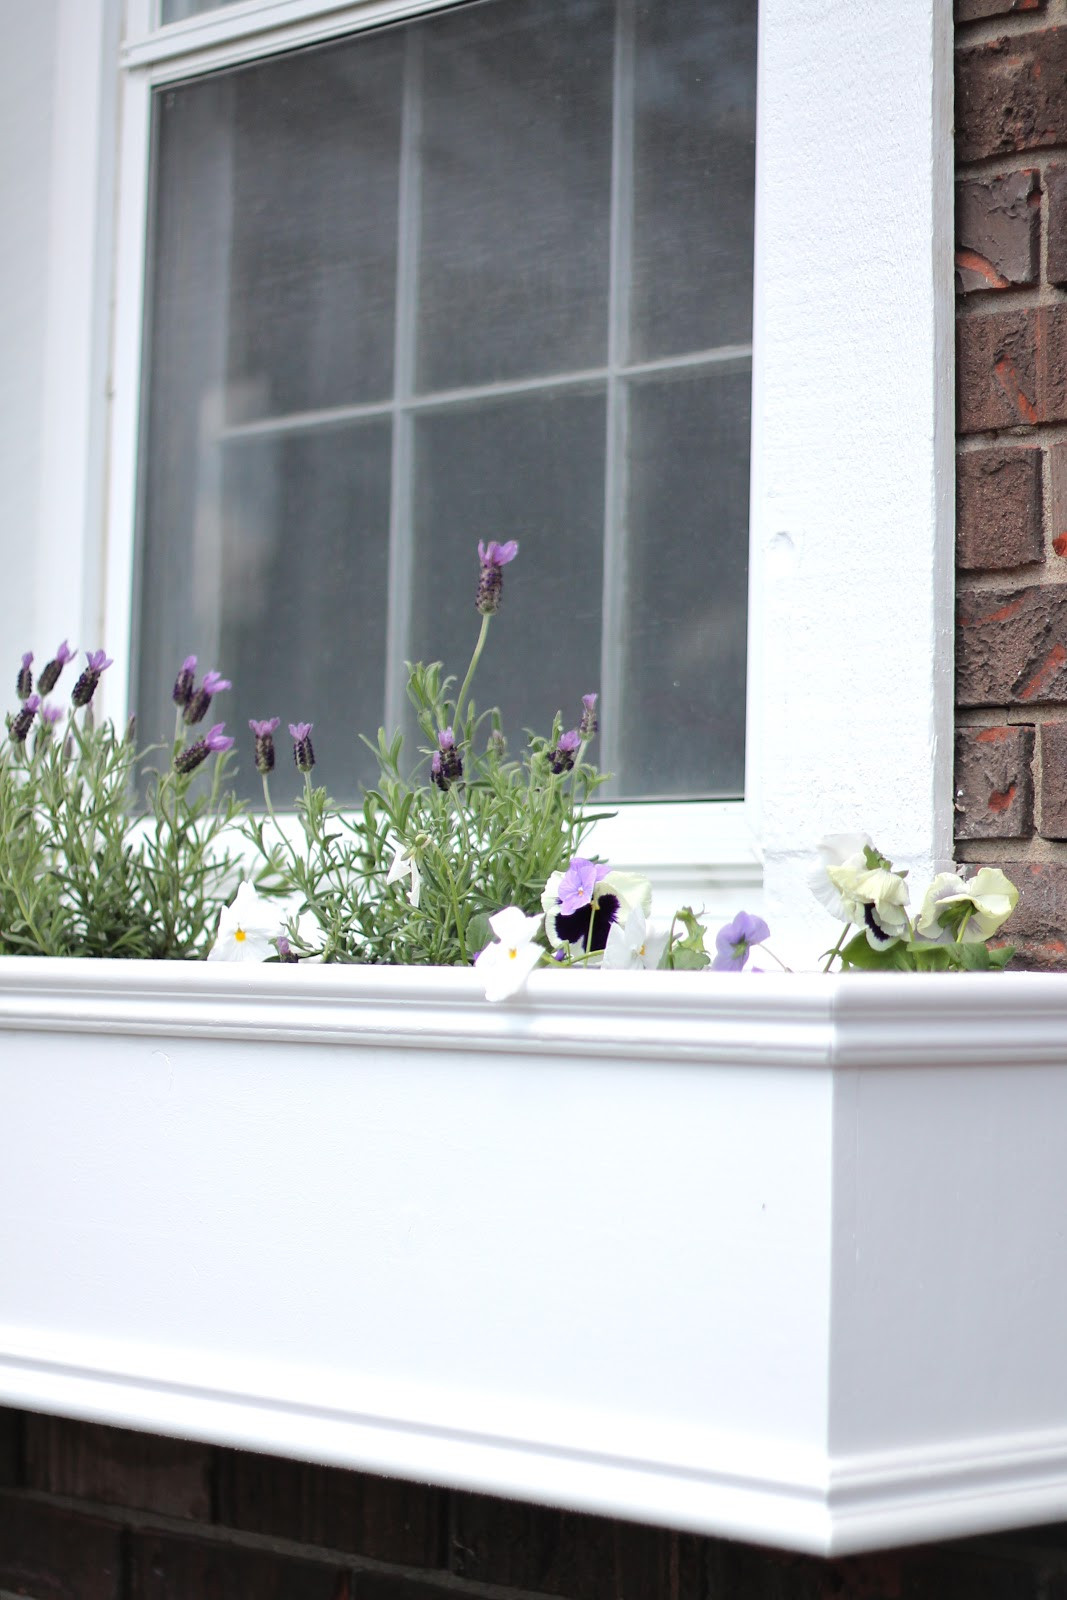 Best ideas about DIY Window Planter Box . Save or Pin How to Make Window Boxes Now.